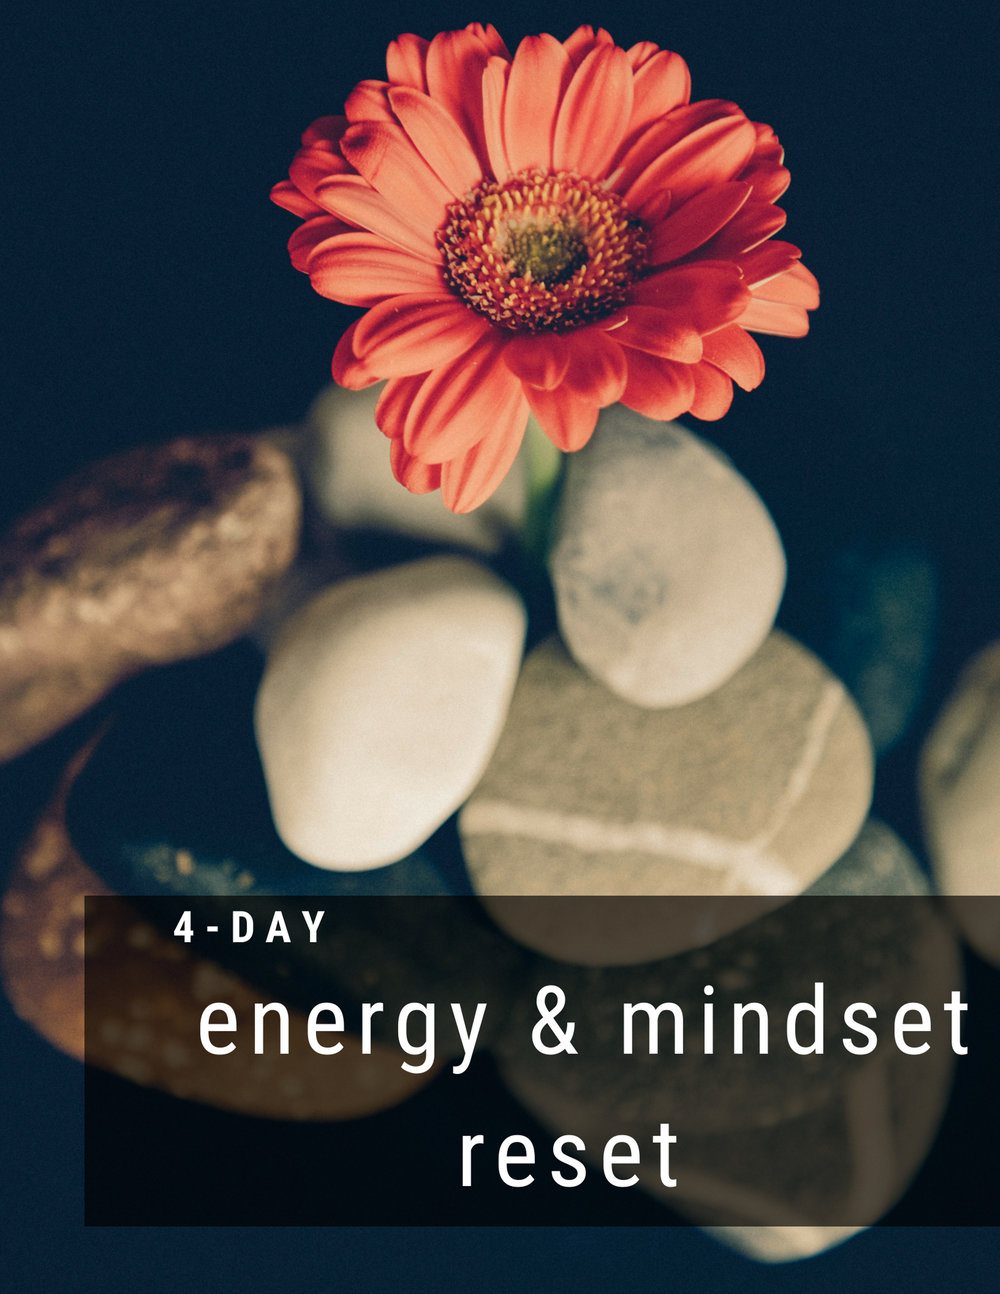 A time for renewal. - In this 4-day program you will learn to cultivate a mindset that integrates self-compassion & self love and how to eat healthy foods that will leave you feeling replenished and revitalized.